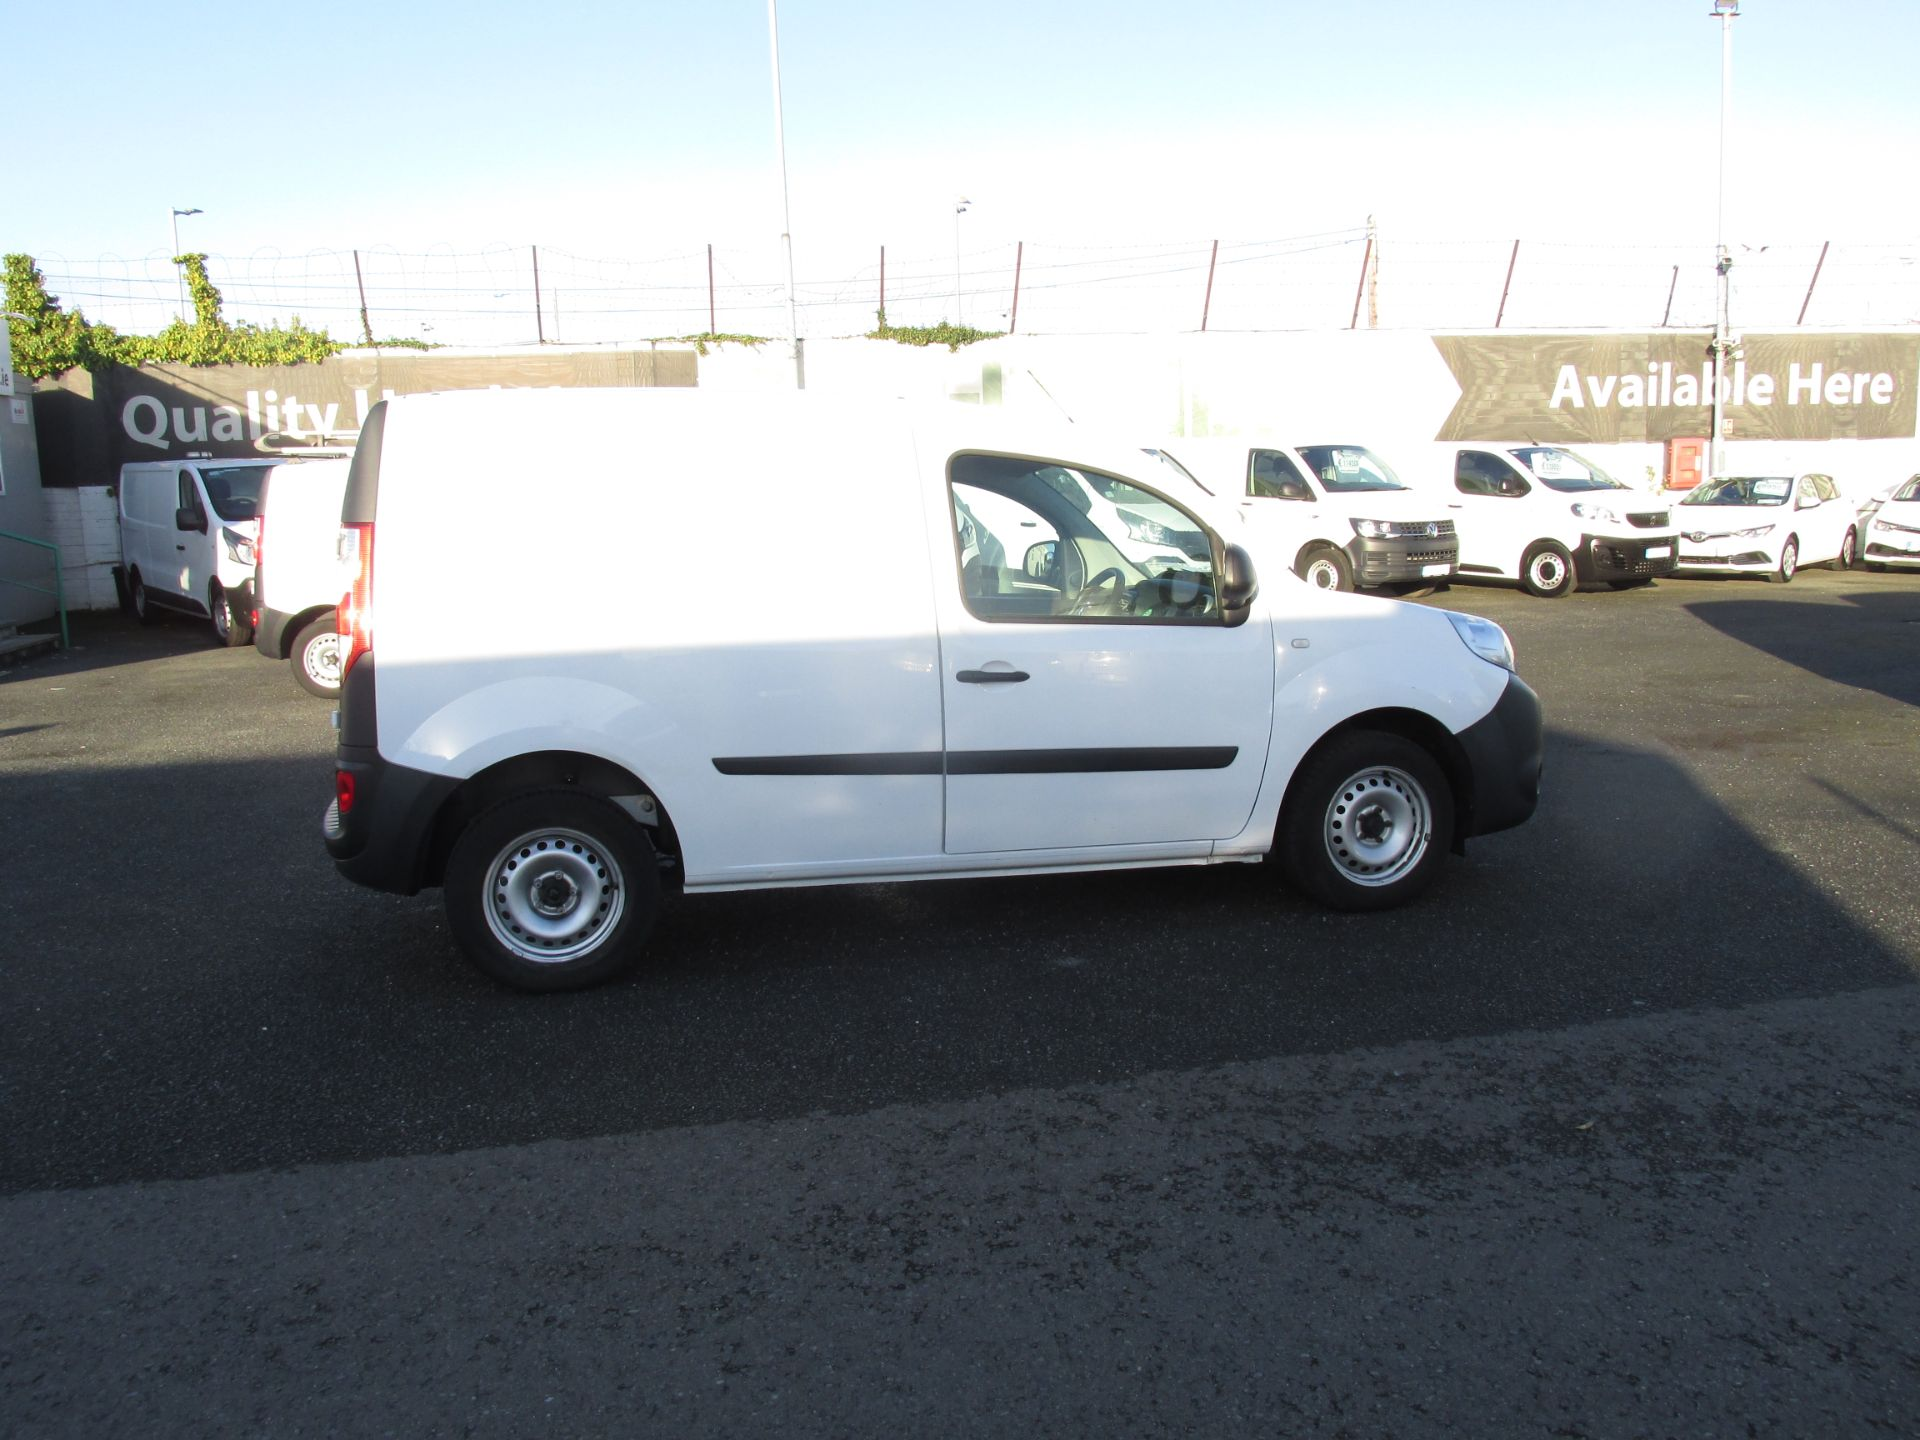 2017 Renault Kangoo ML19 Energy DCI 75 Business 2D click and collect call sales for more info (171D11271) Image 8